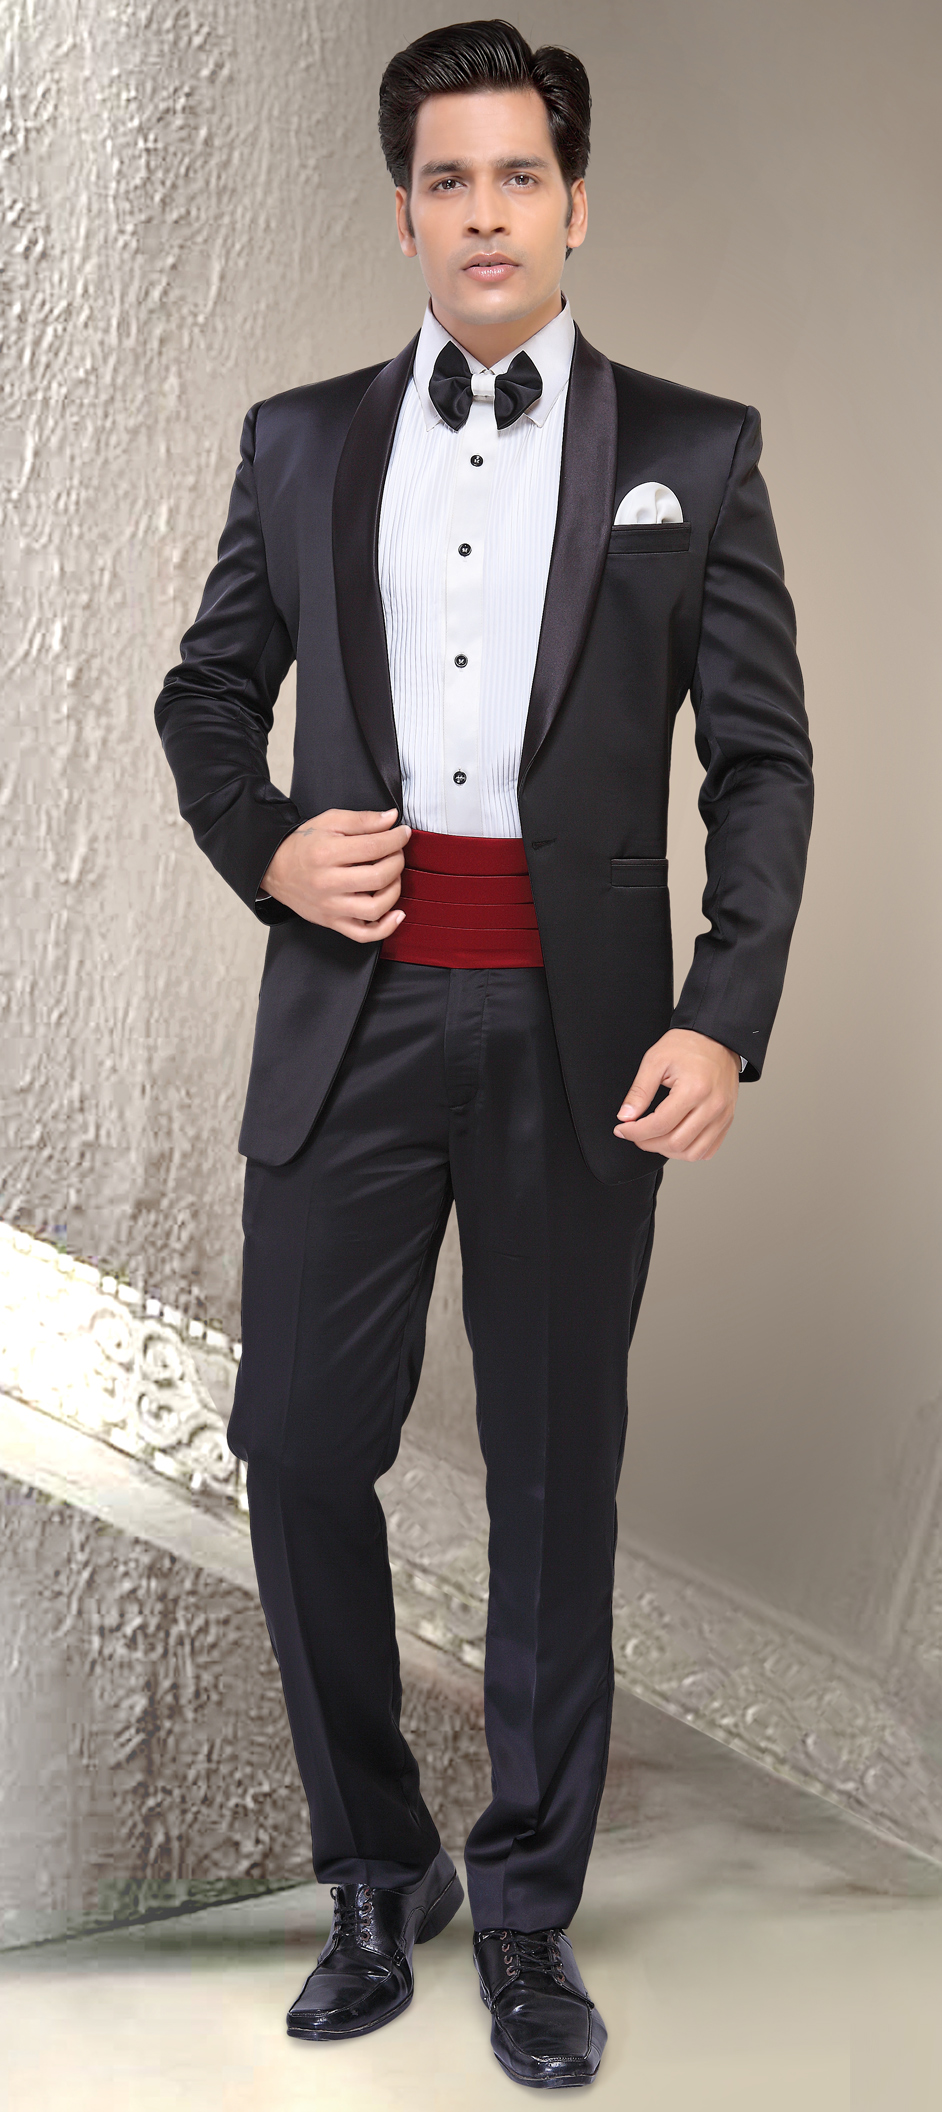 Men s tuxedos wedding tuxedos suits indian wedding saree wishlist button 501236 junglespirit Images